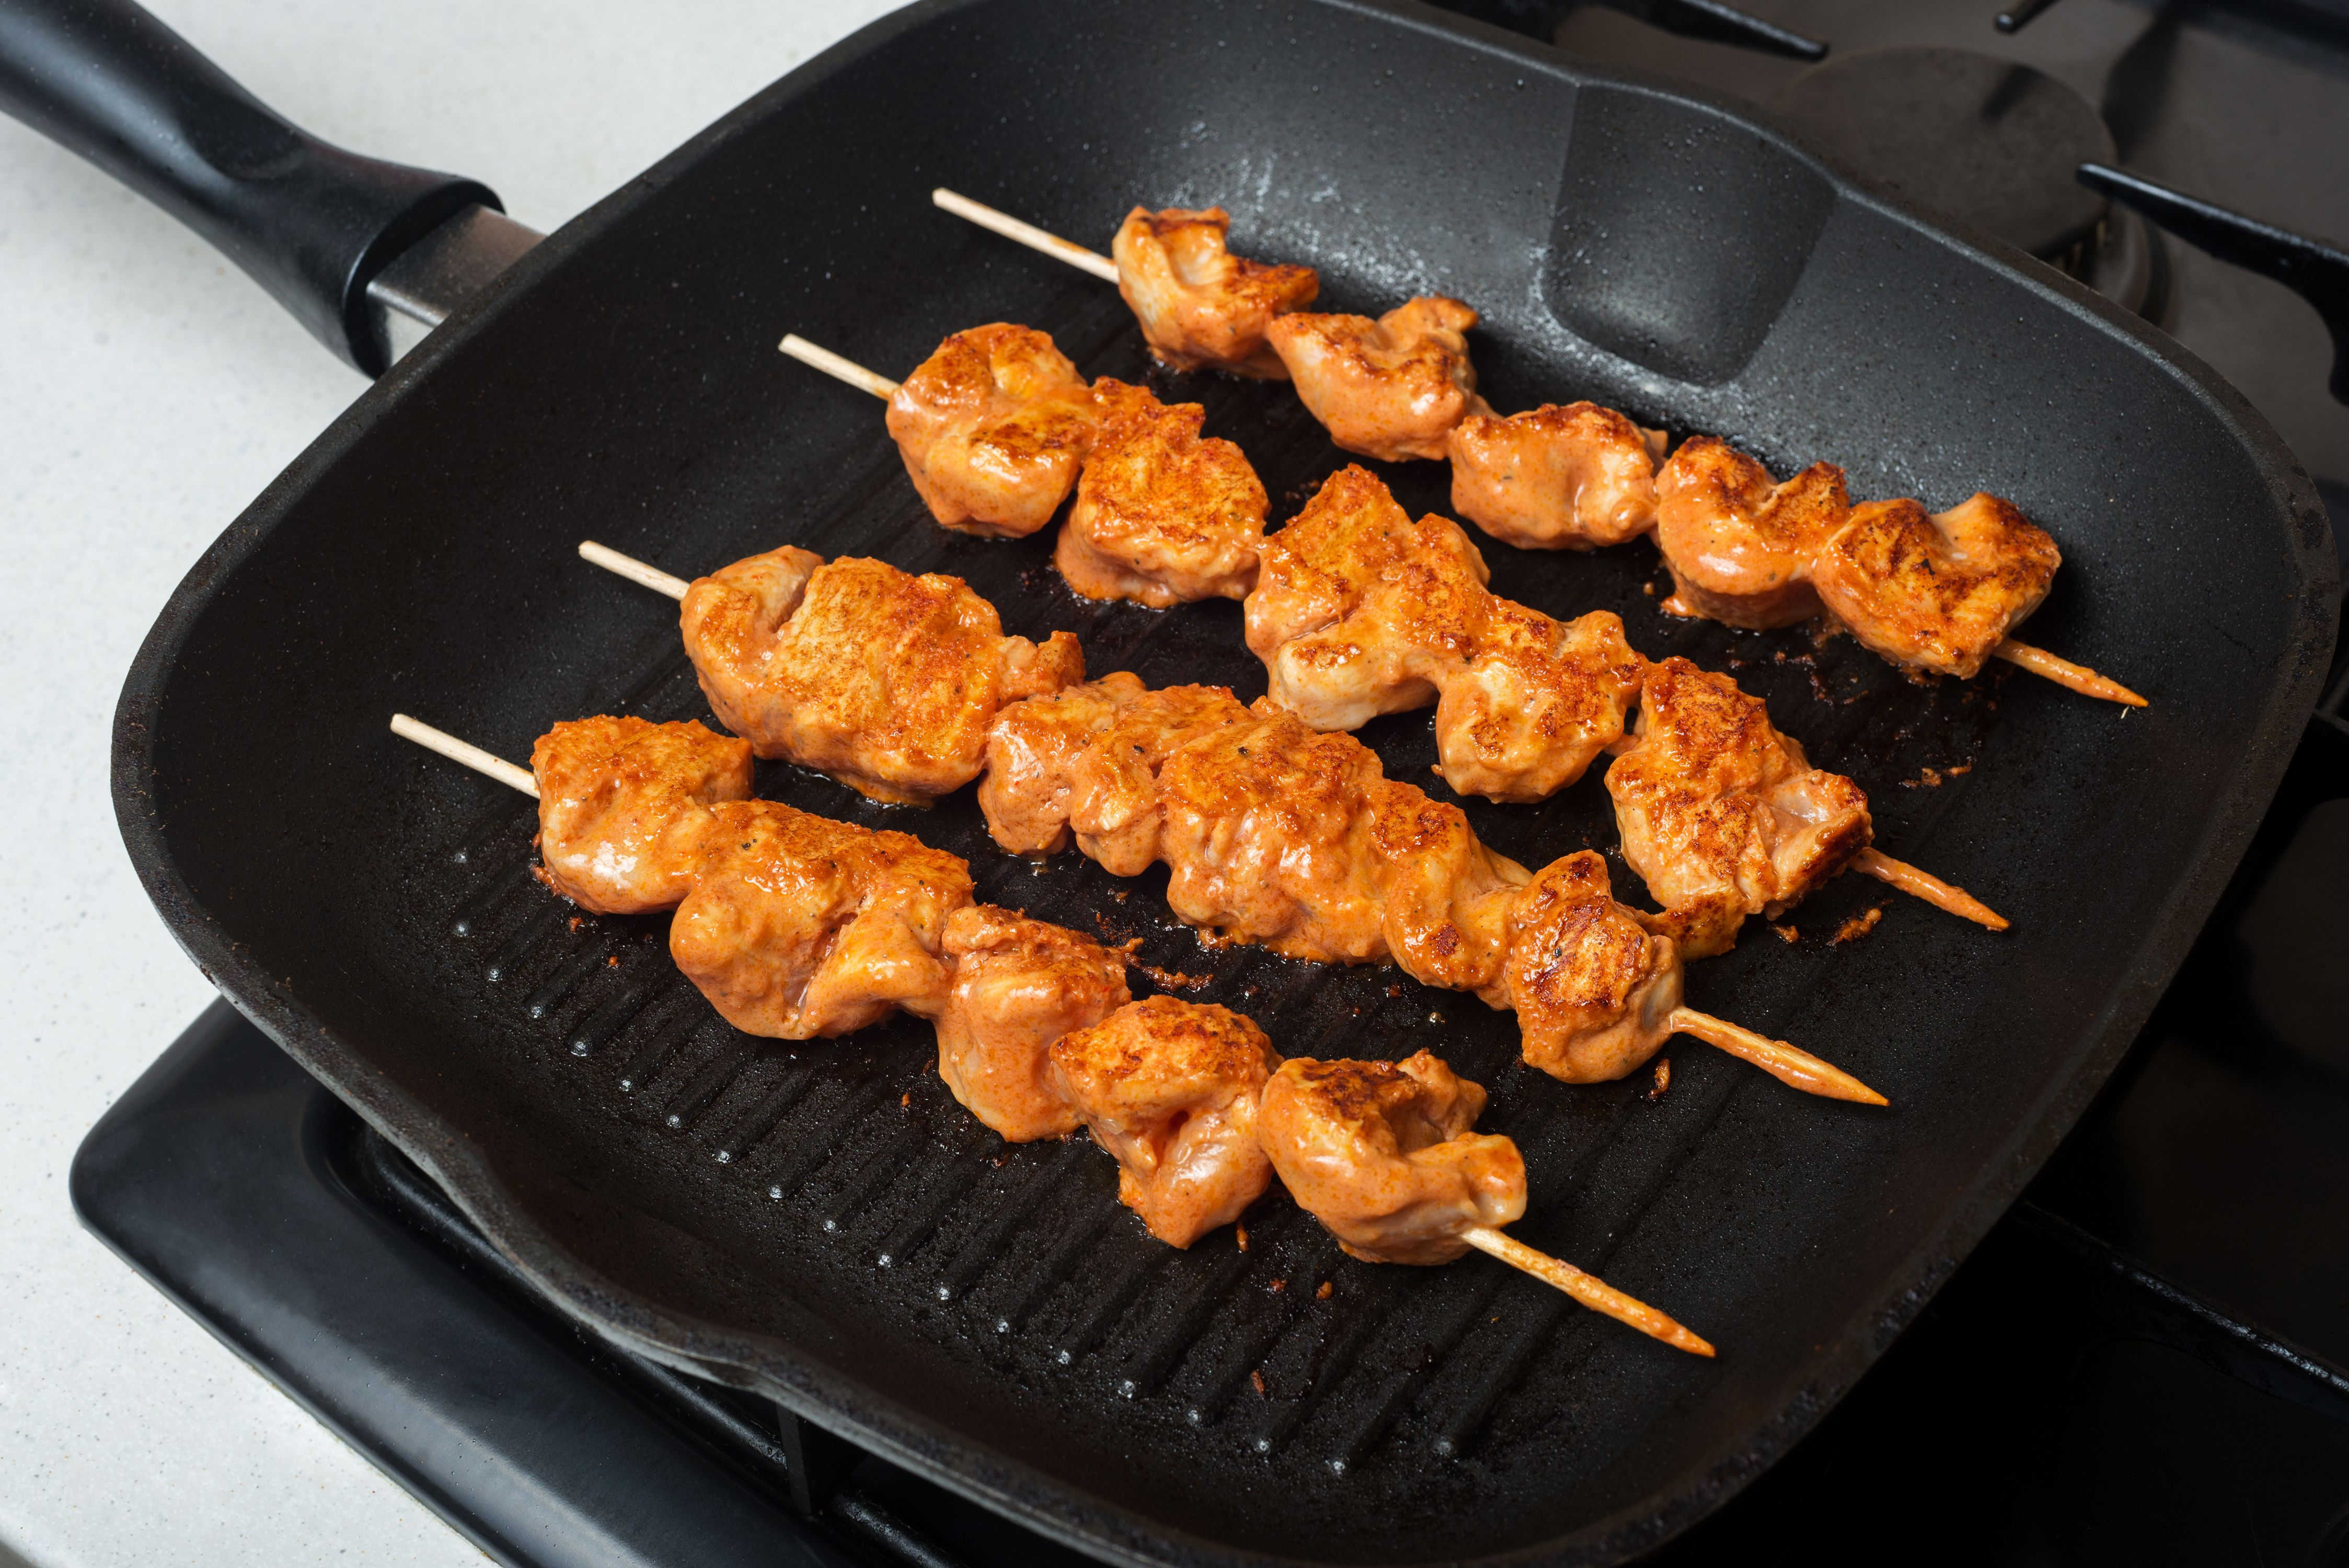 Turkish chicken kebabs cooking in a grill pan